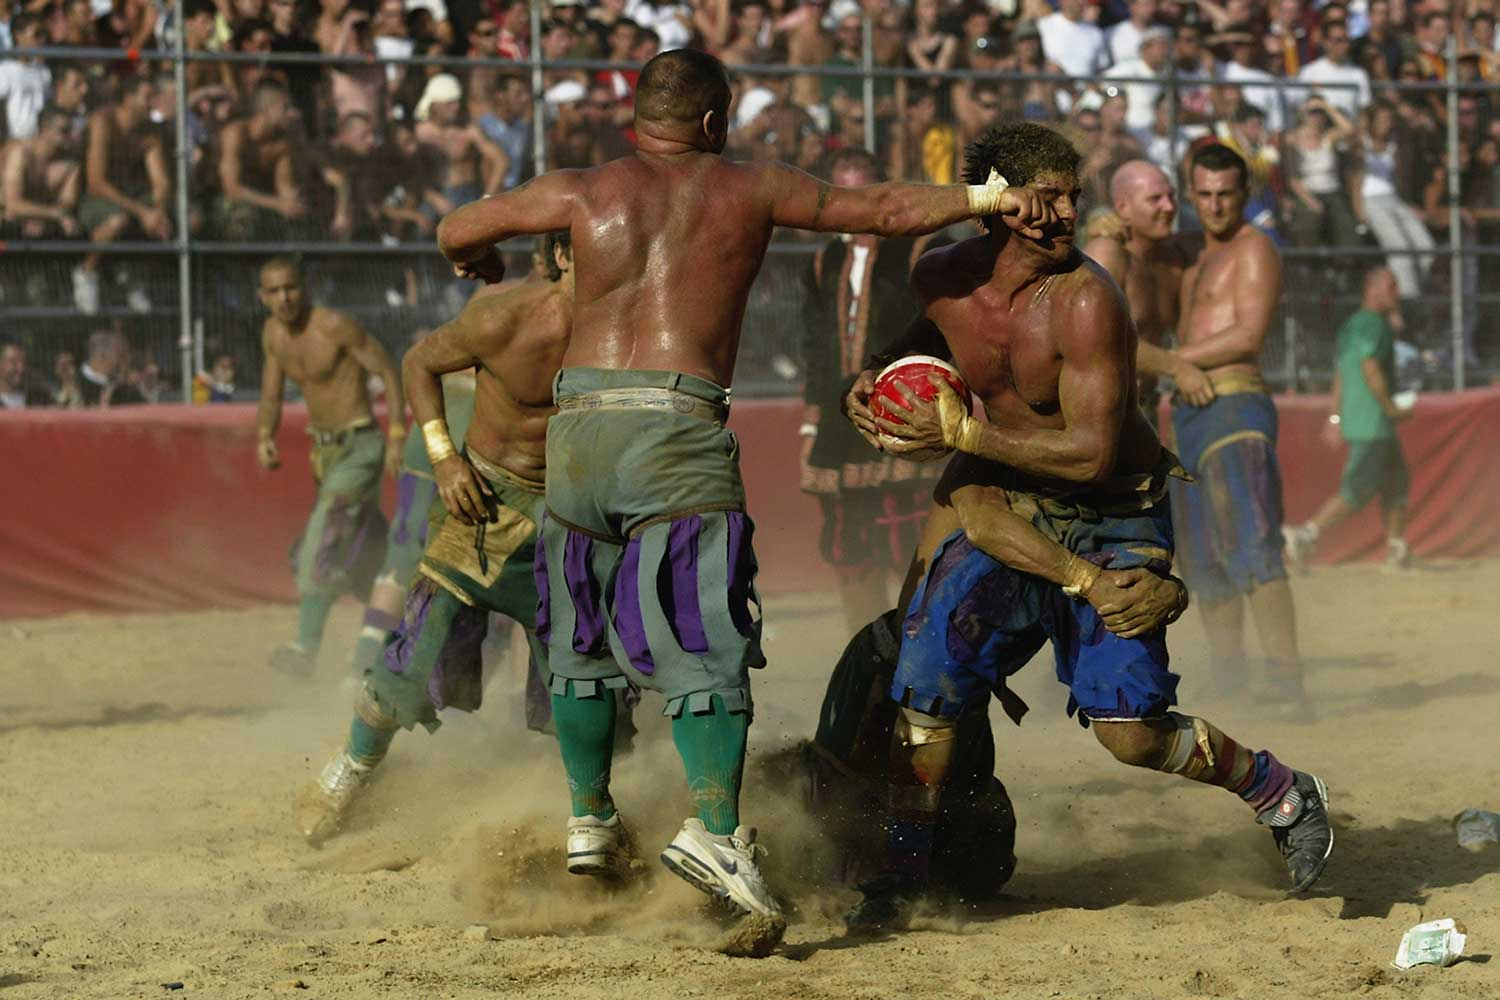 The Verdi and Azzurri teams fight for the ball during the Calcio Fiorentino, a medieval football event held between the four quarters of Florence since 1584 at La Piazza Santa Croce in Florence, Italy.